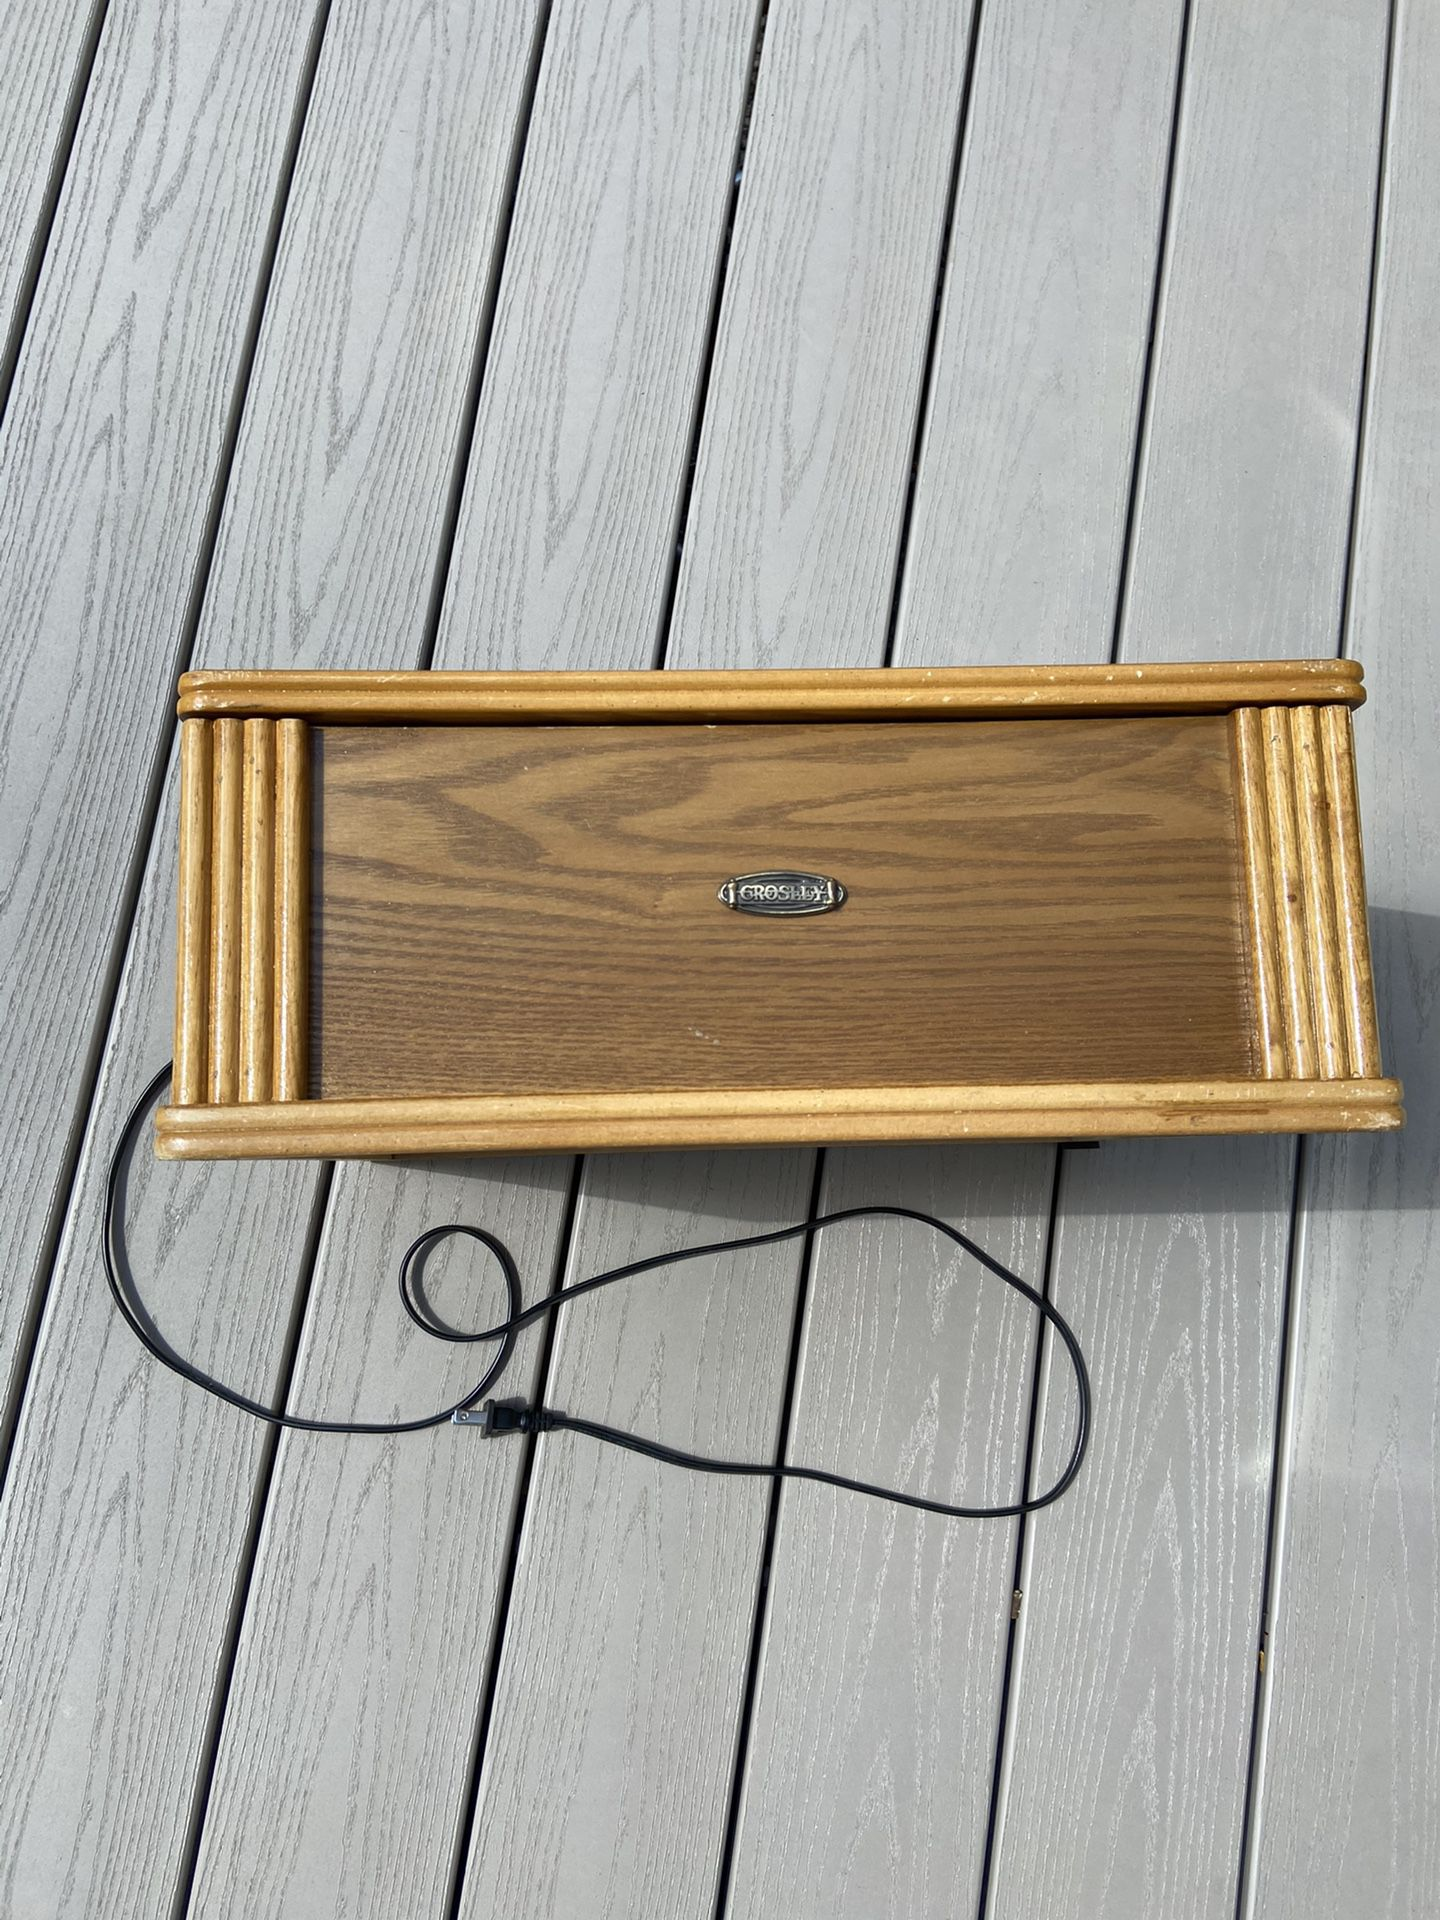 Crosley Wooden CR47 Record Player